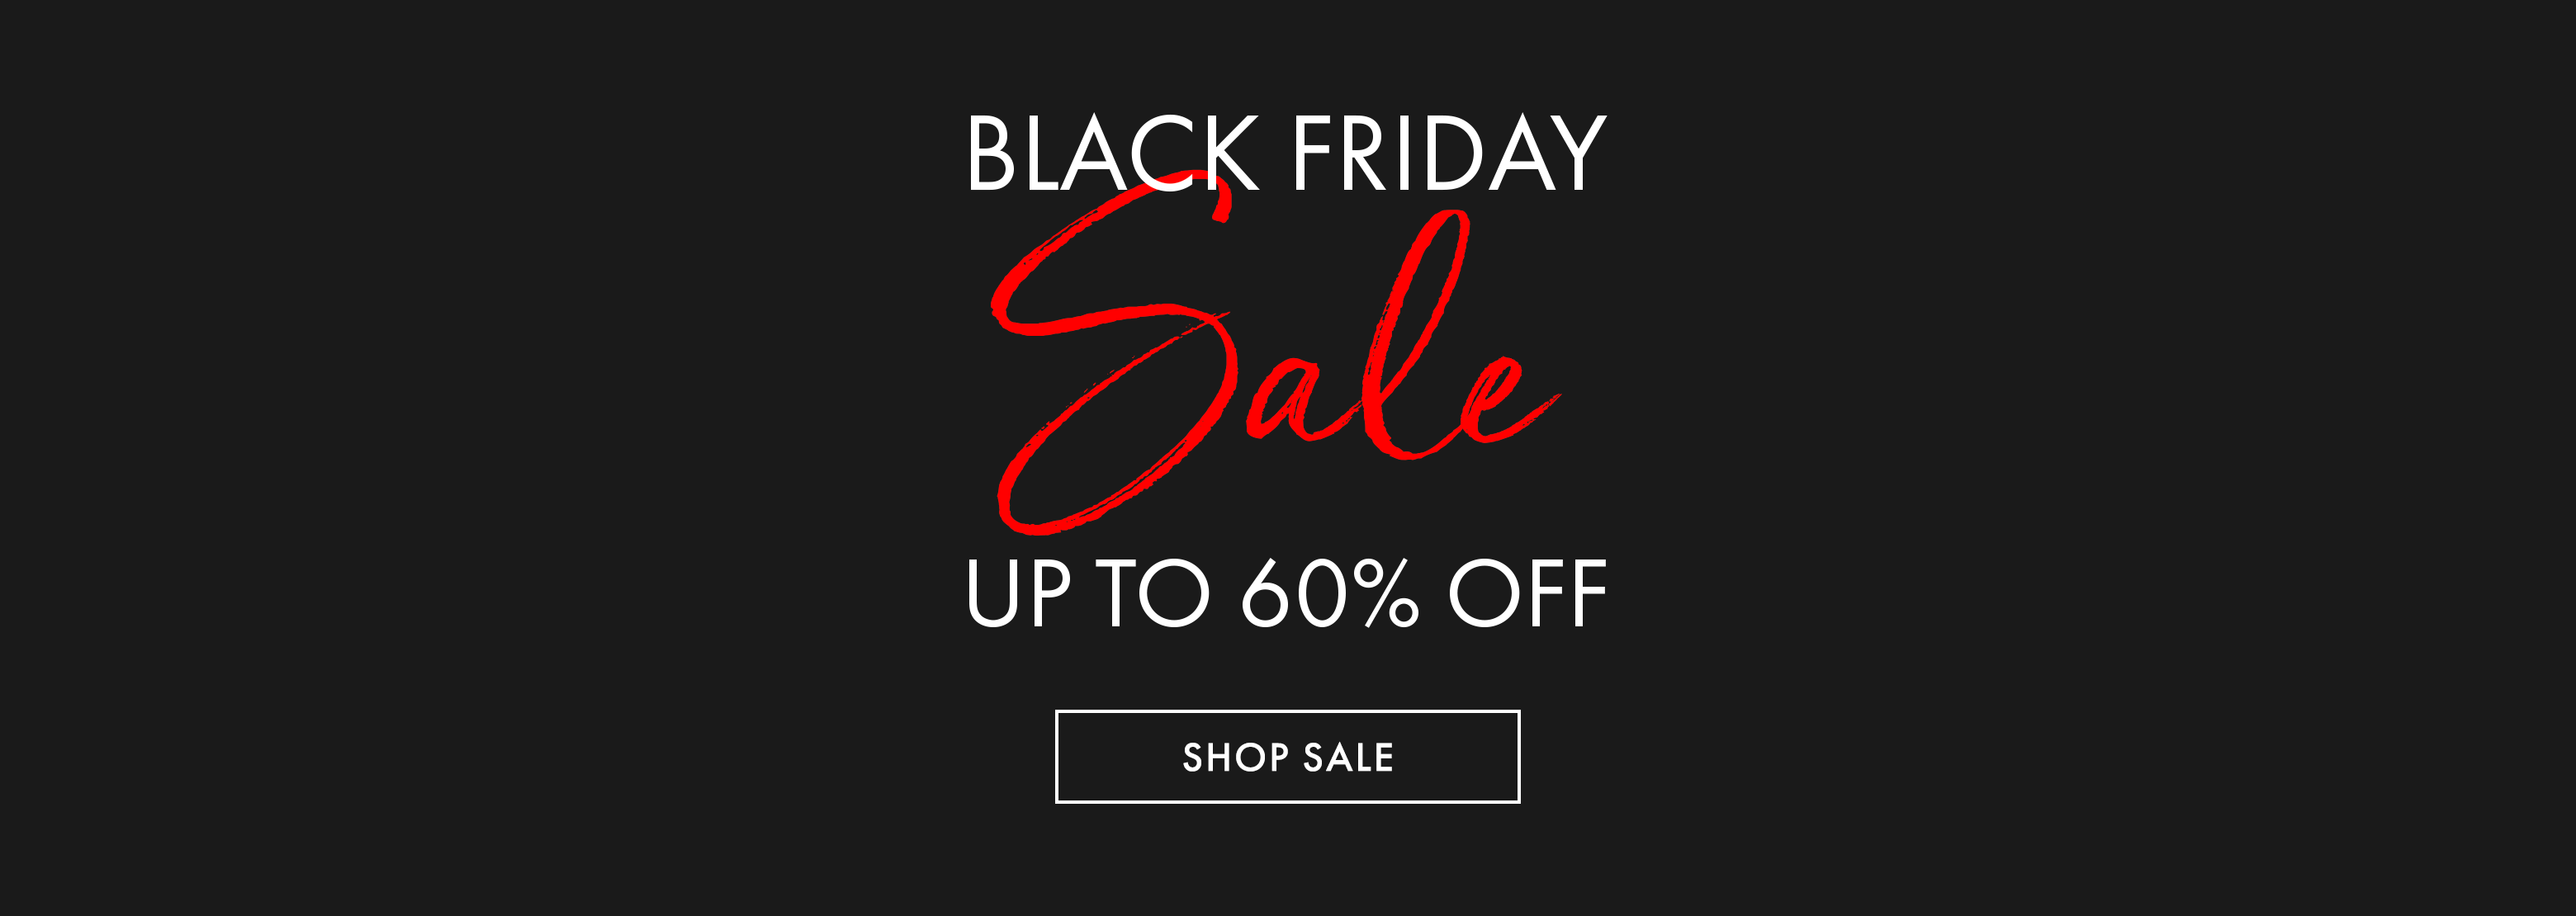 Black Friday Sale - Up to 60% off